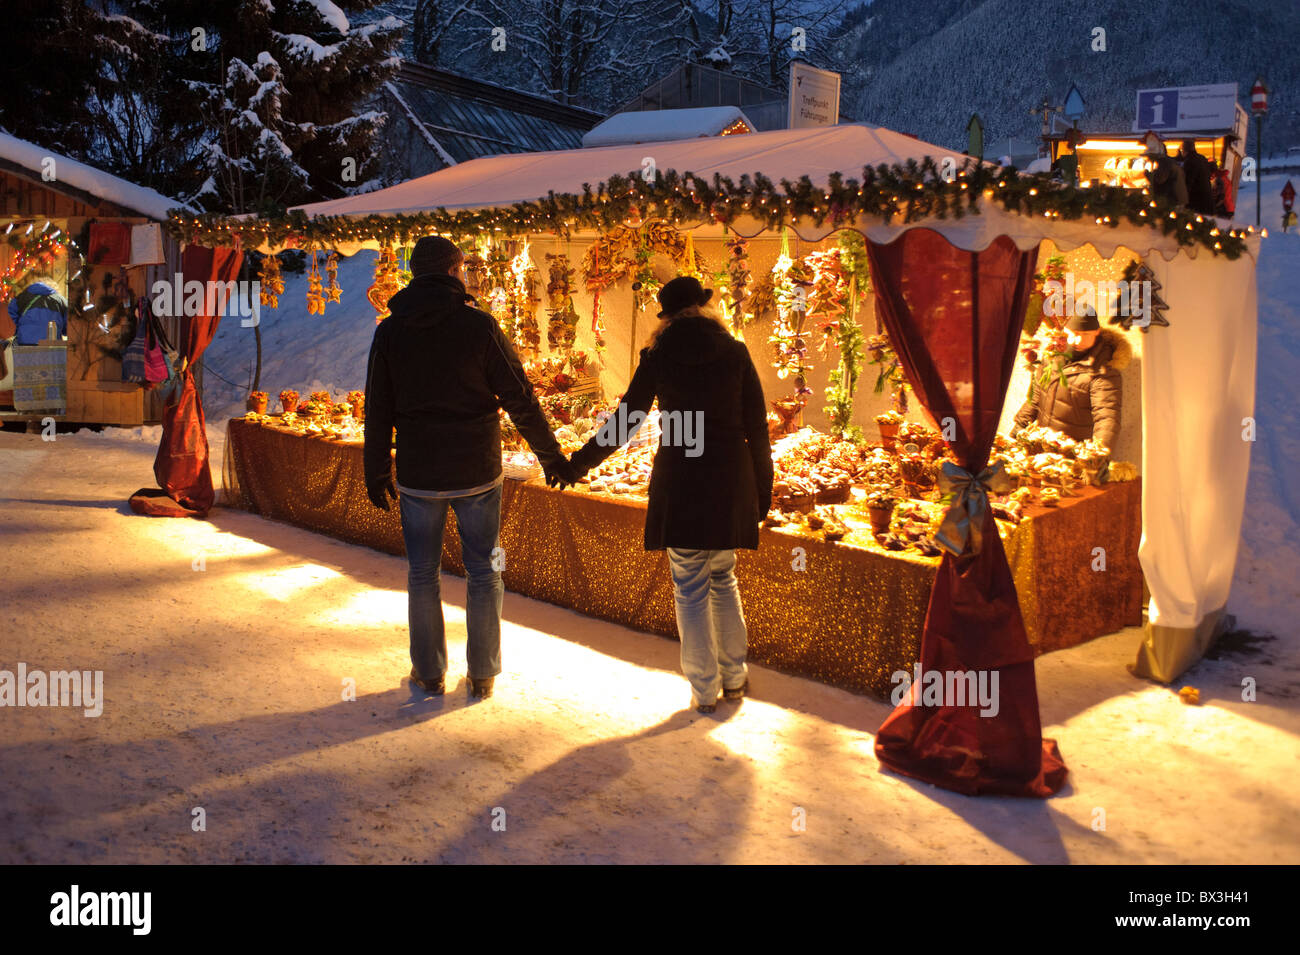 Traditional Christmas Market Gifts Stock Photos & Traditional ...